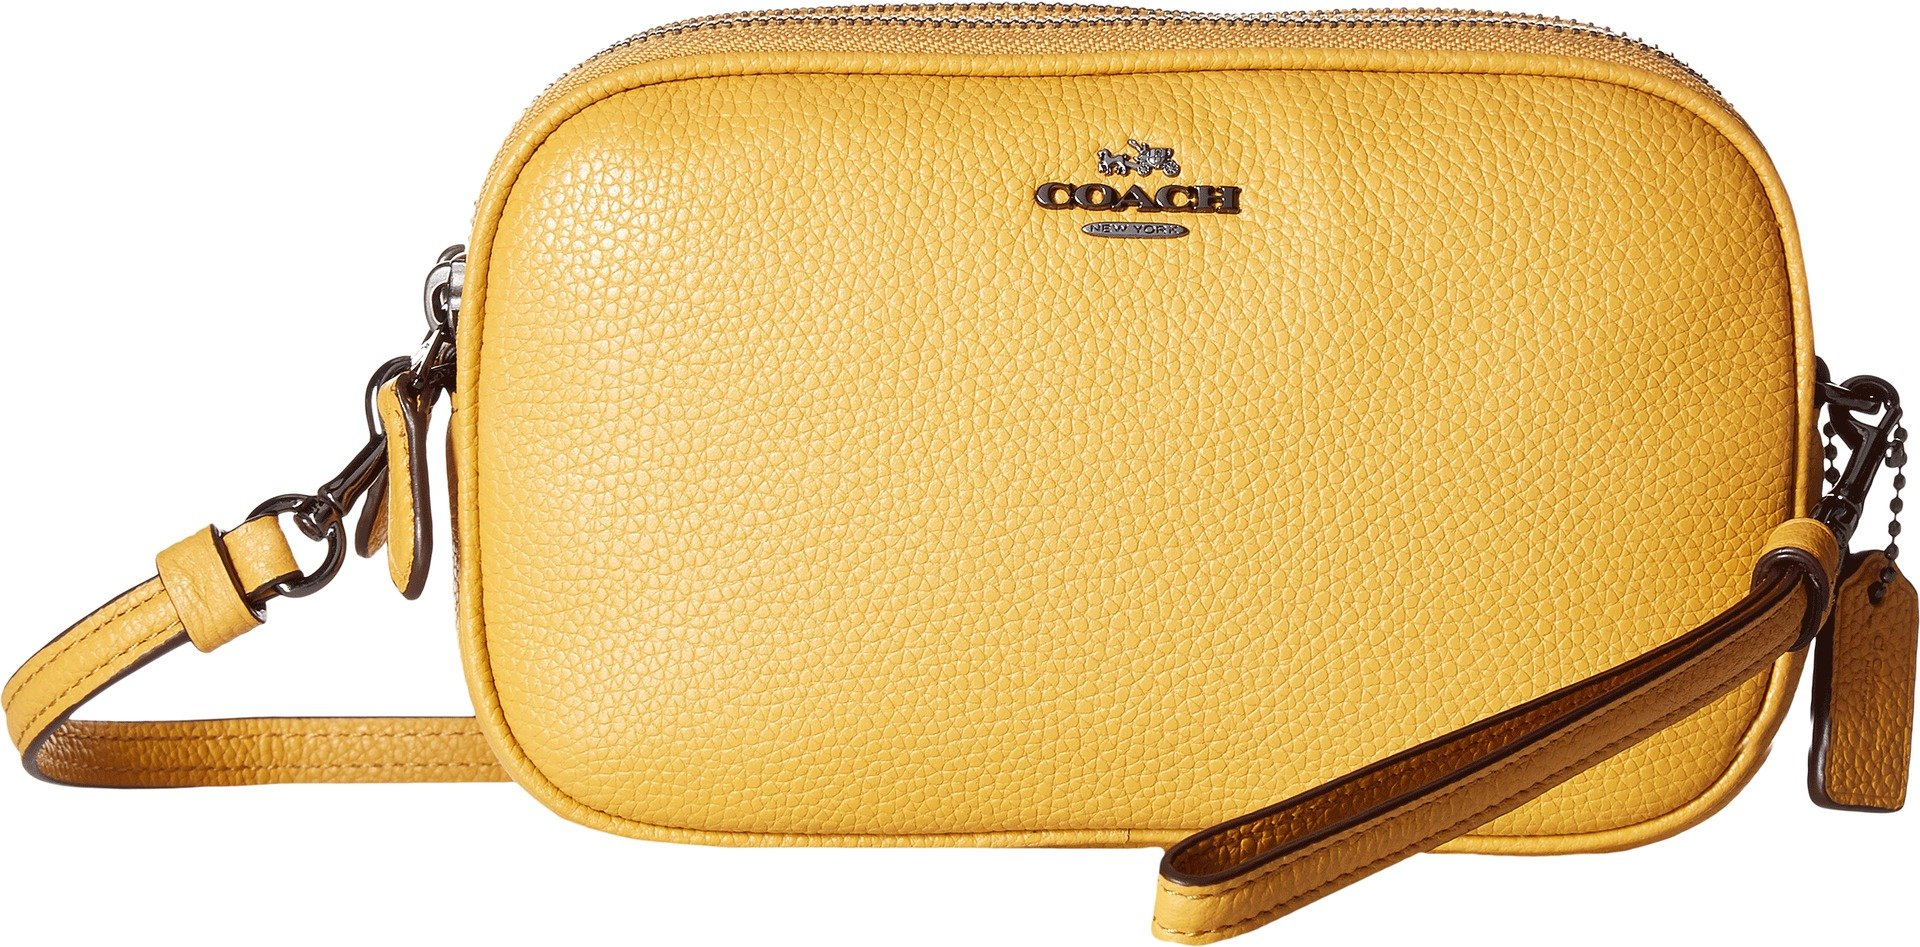 COACH Women's Pebbled Leather Crossbody Clutch Dk/Yellow Gold One Size